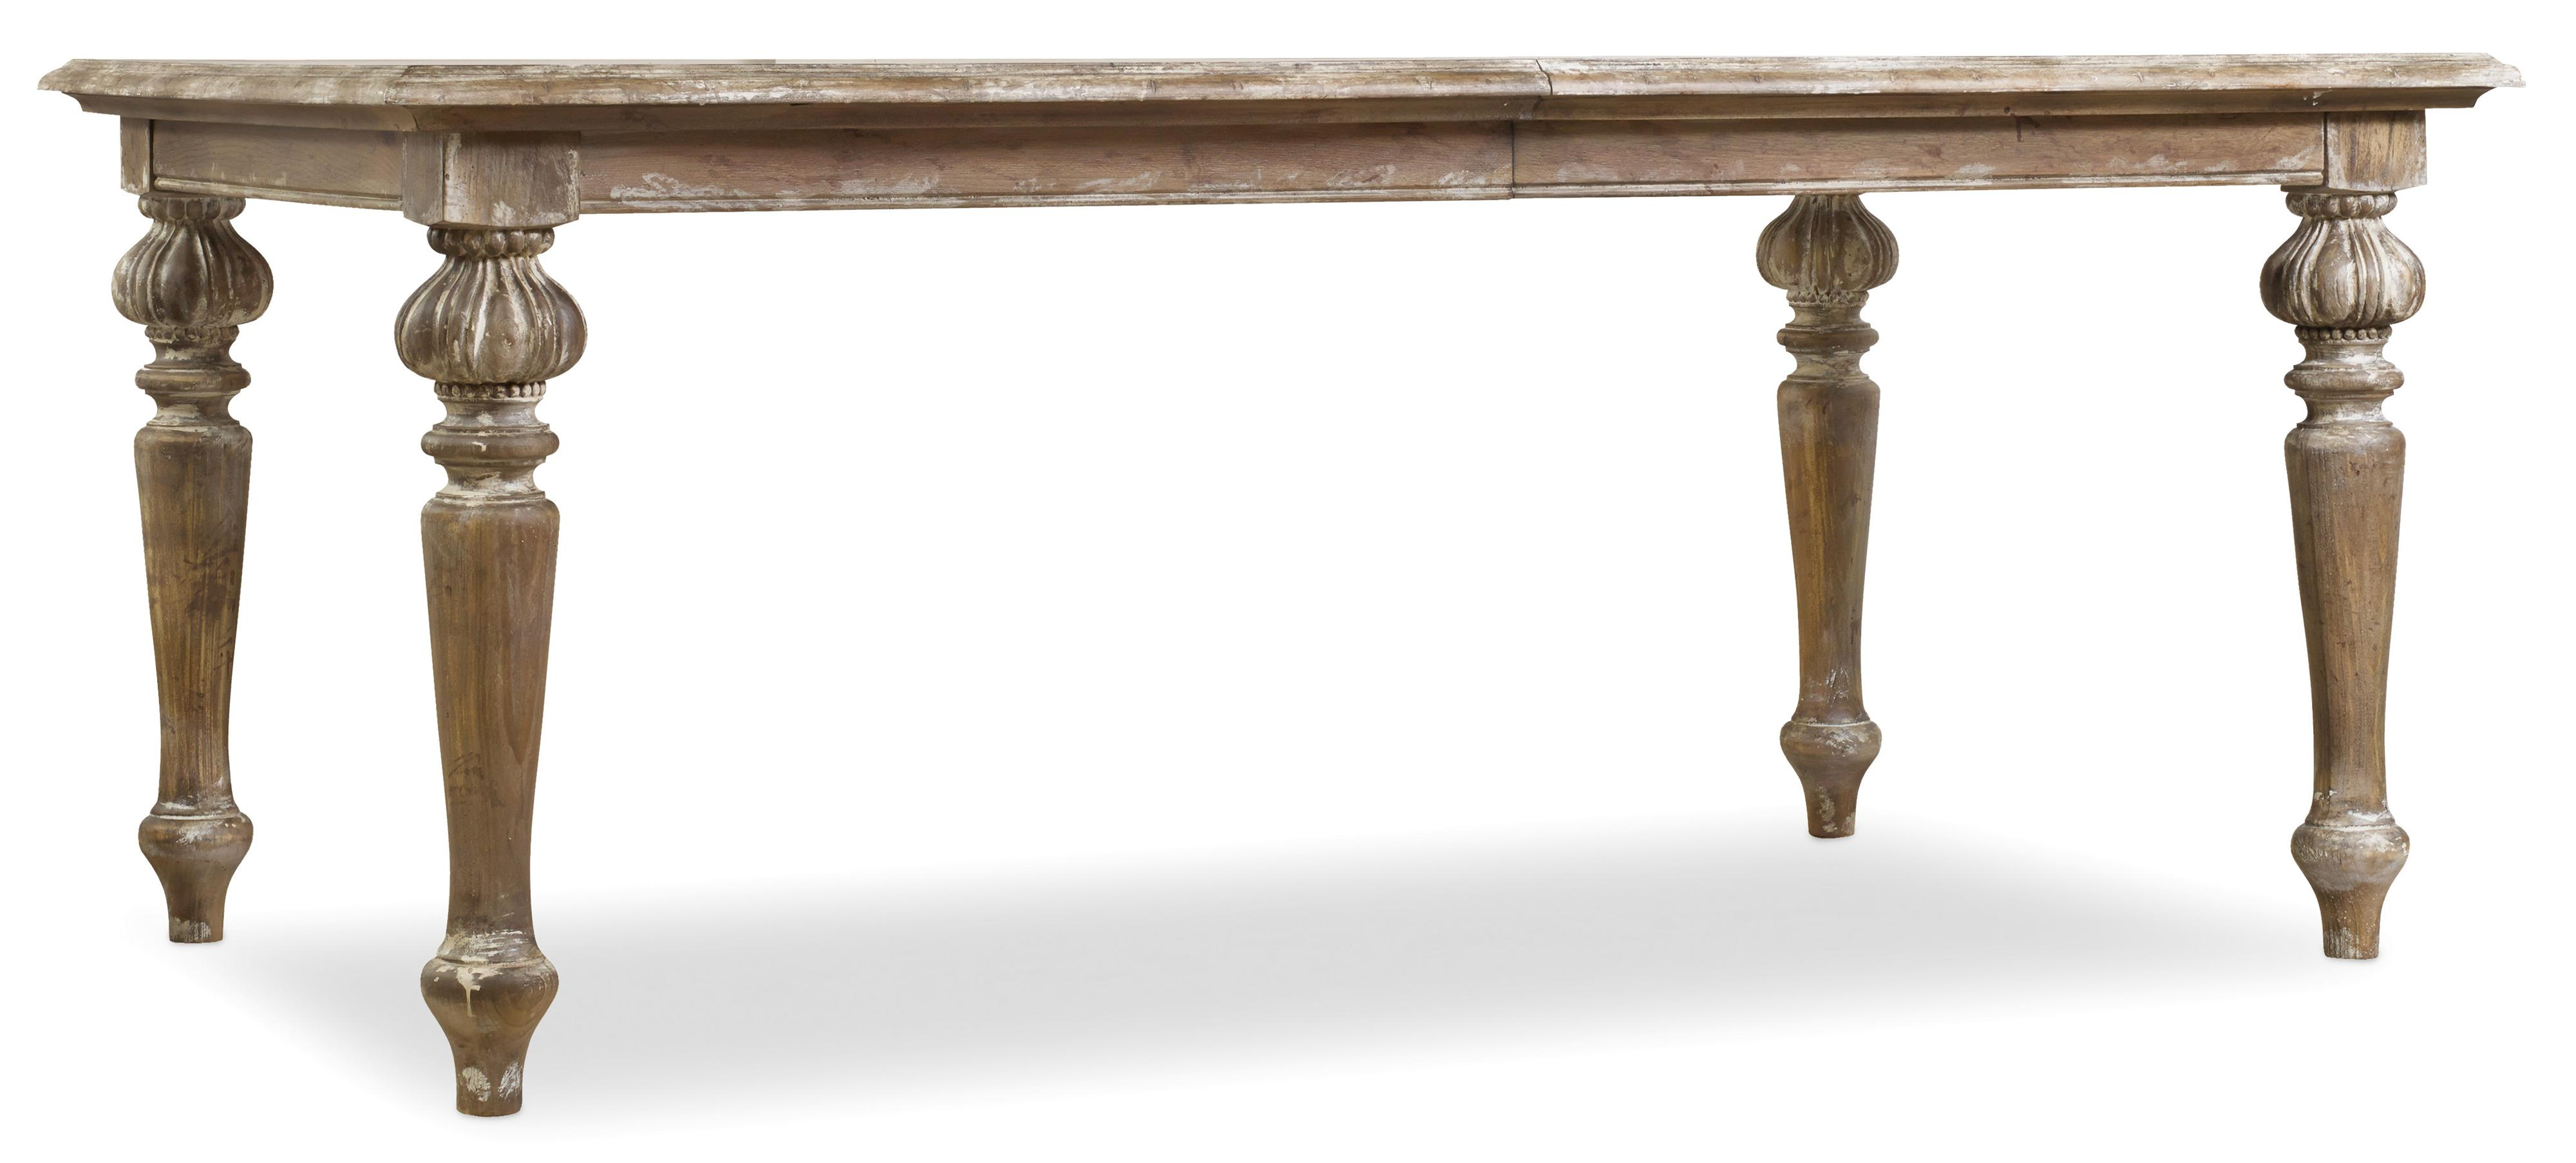 Chatelet Rectangle Leg Dining Table by Hooker Furniture at Stoney Creek Furniture